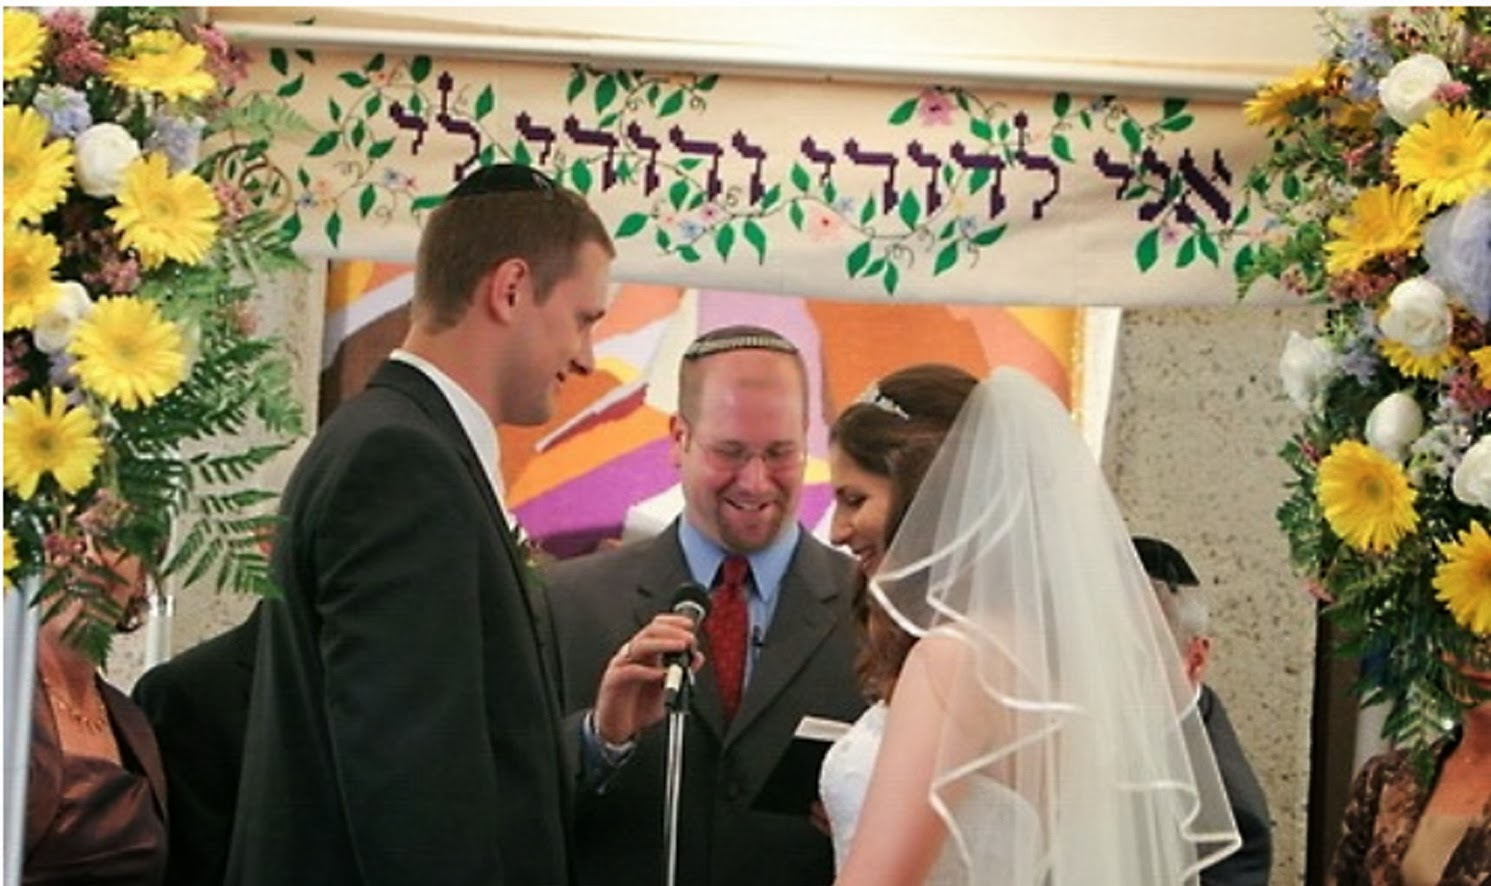 Rabbi For Wedding - Rabbi for Weddings - Destination Weddings